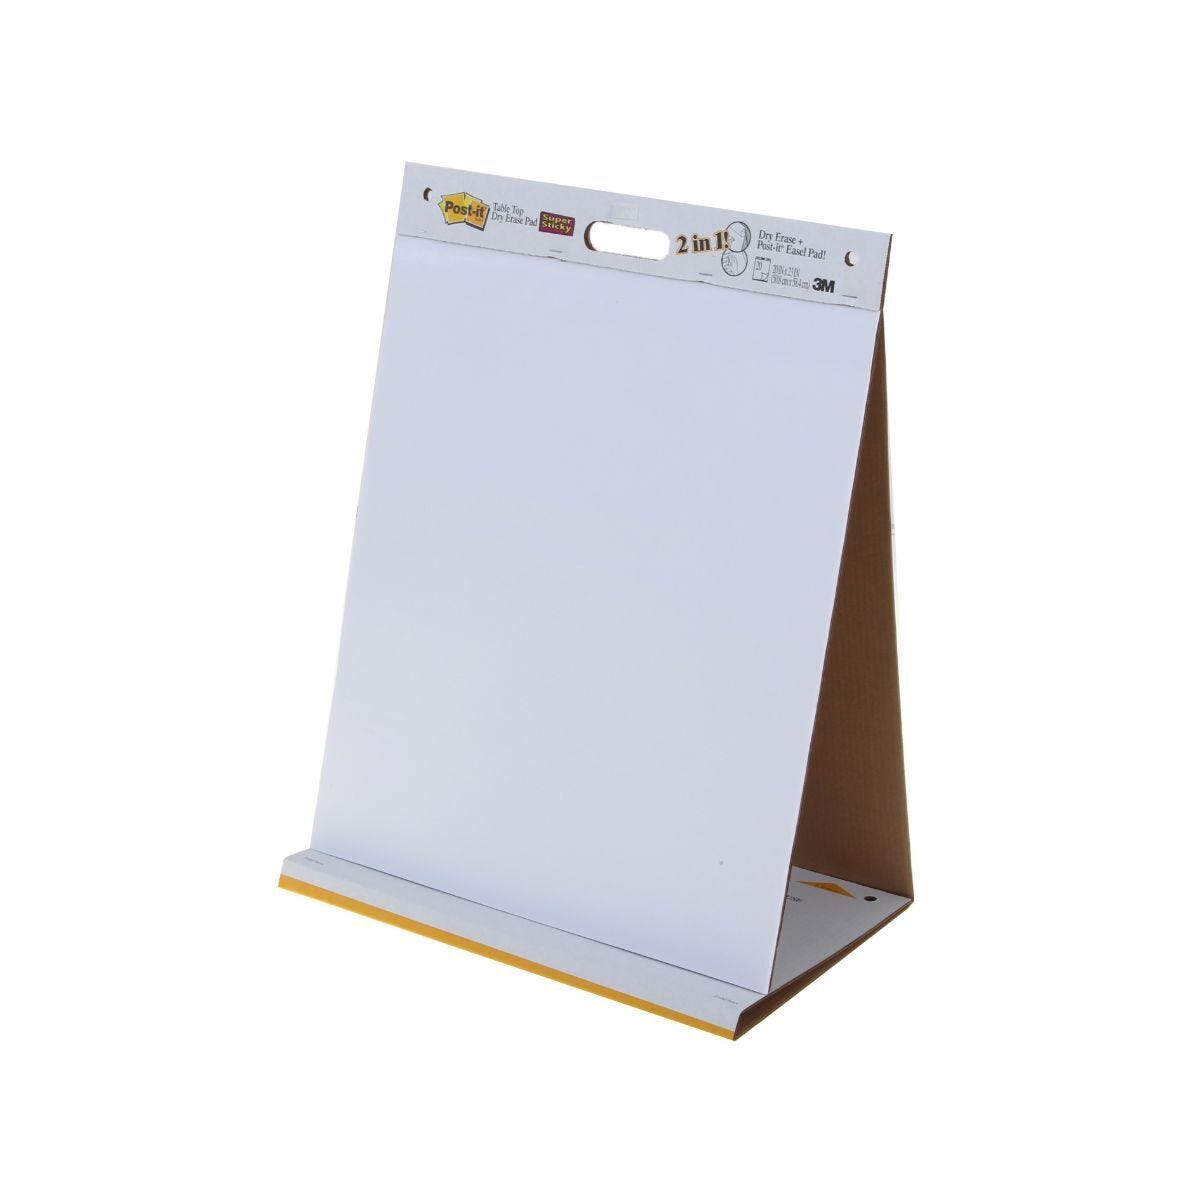 3M Post-it Tabletop Dual Easel 20 Sheets